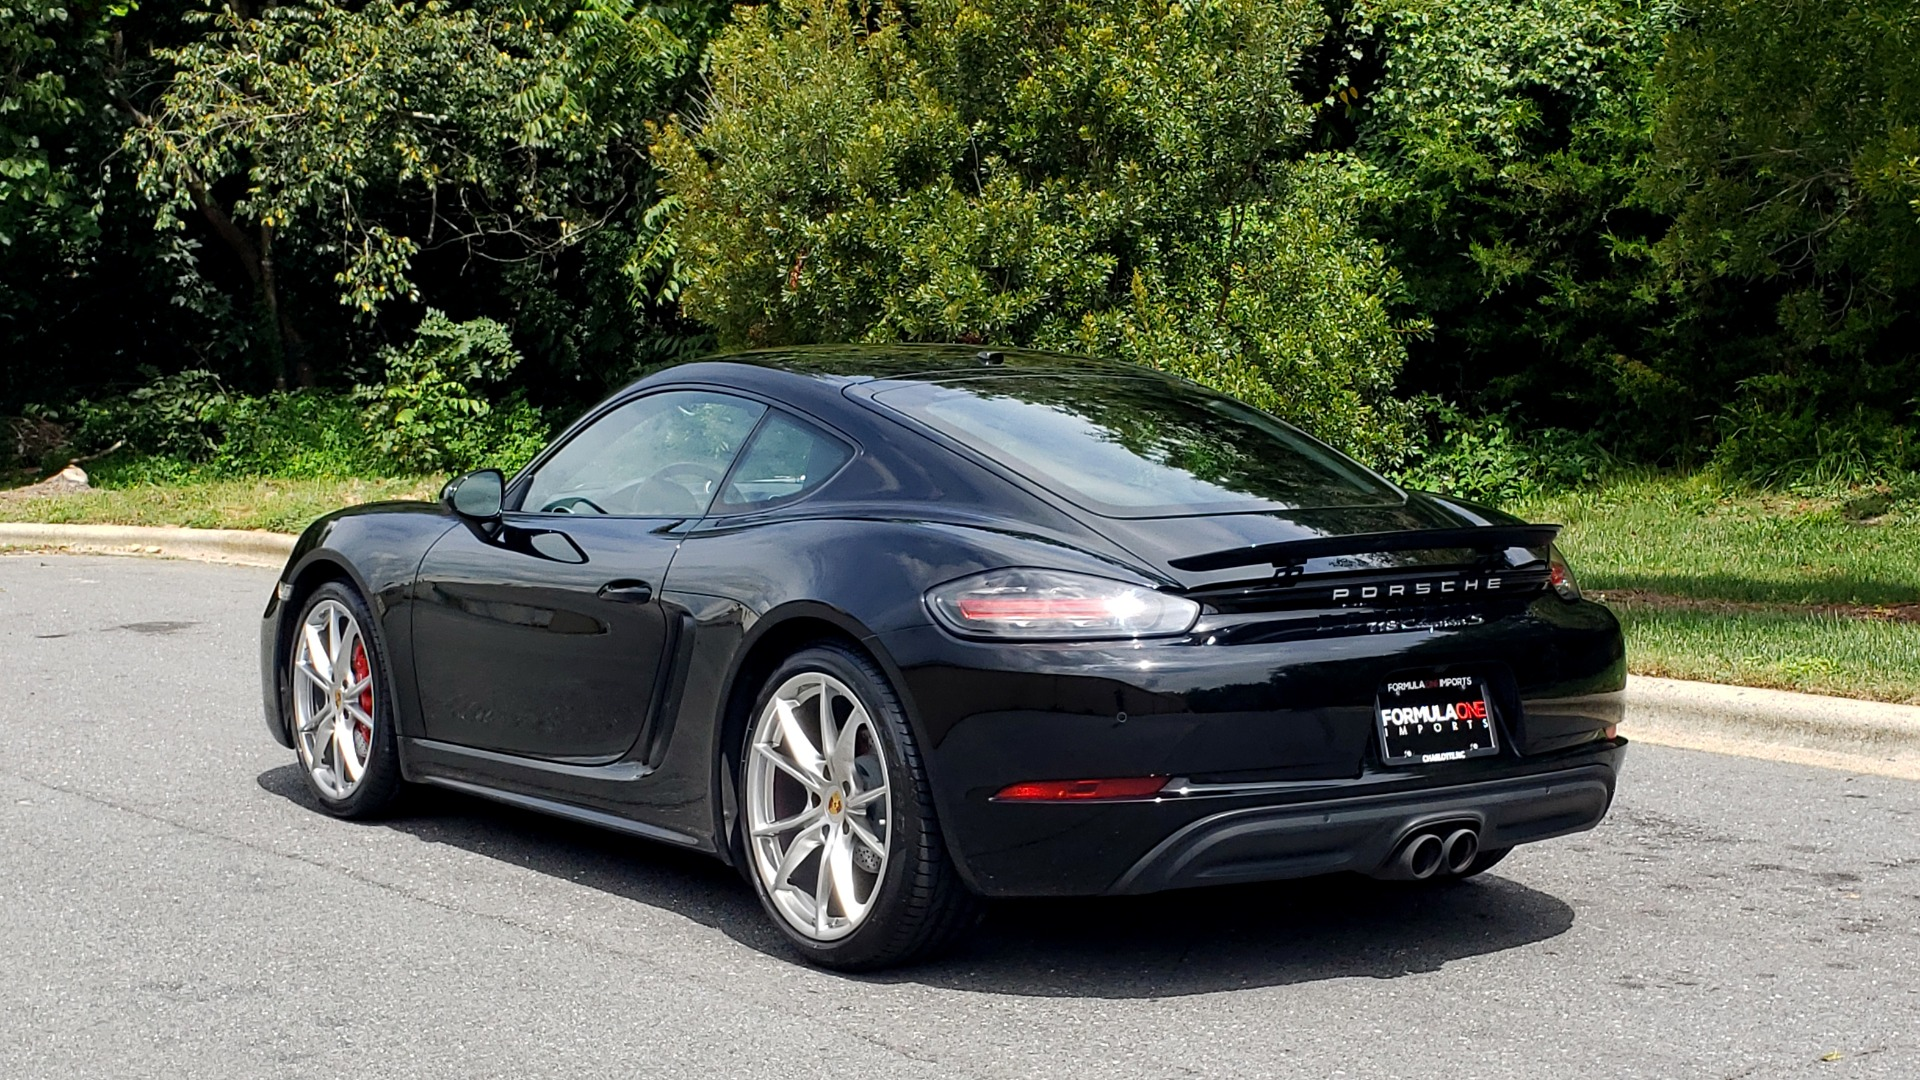 Used 2018 Porsche 718 CAYMAN S / PREM PKG PLUS / PDK / NAV / BOSE / CHRONO / SPORT EXHAUST for sale Sold at Formula Imports in Charlotte NC 28227 3